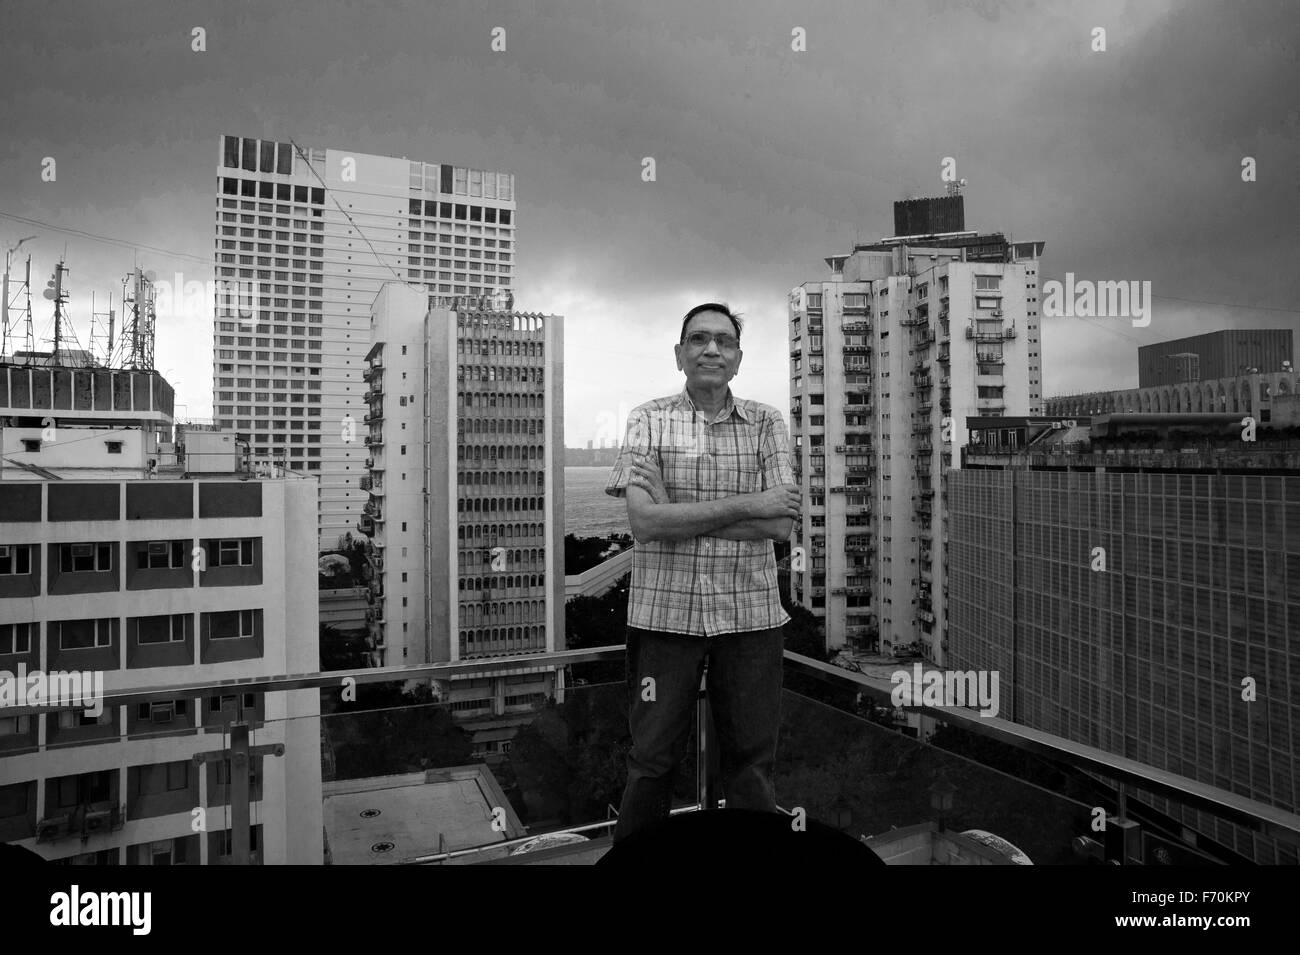 Jagdish Agarwal founder dinodia photo library standing on terrace of new office building at Nariman Point Mumbai - Stock Image